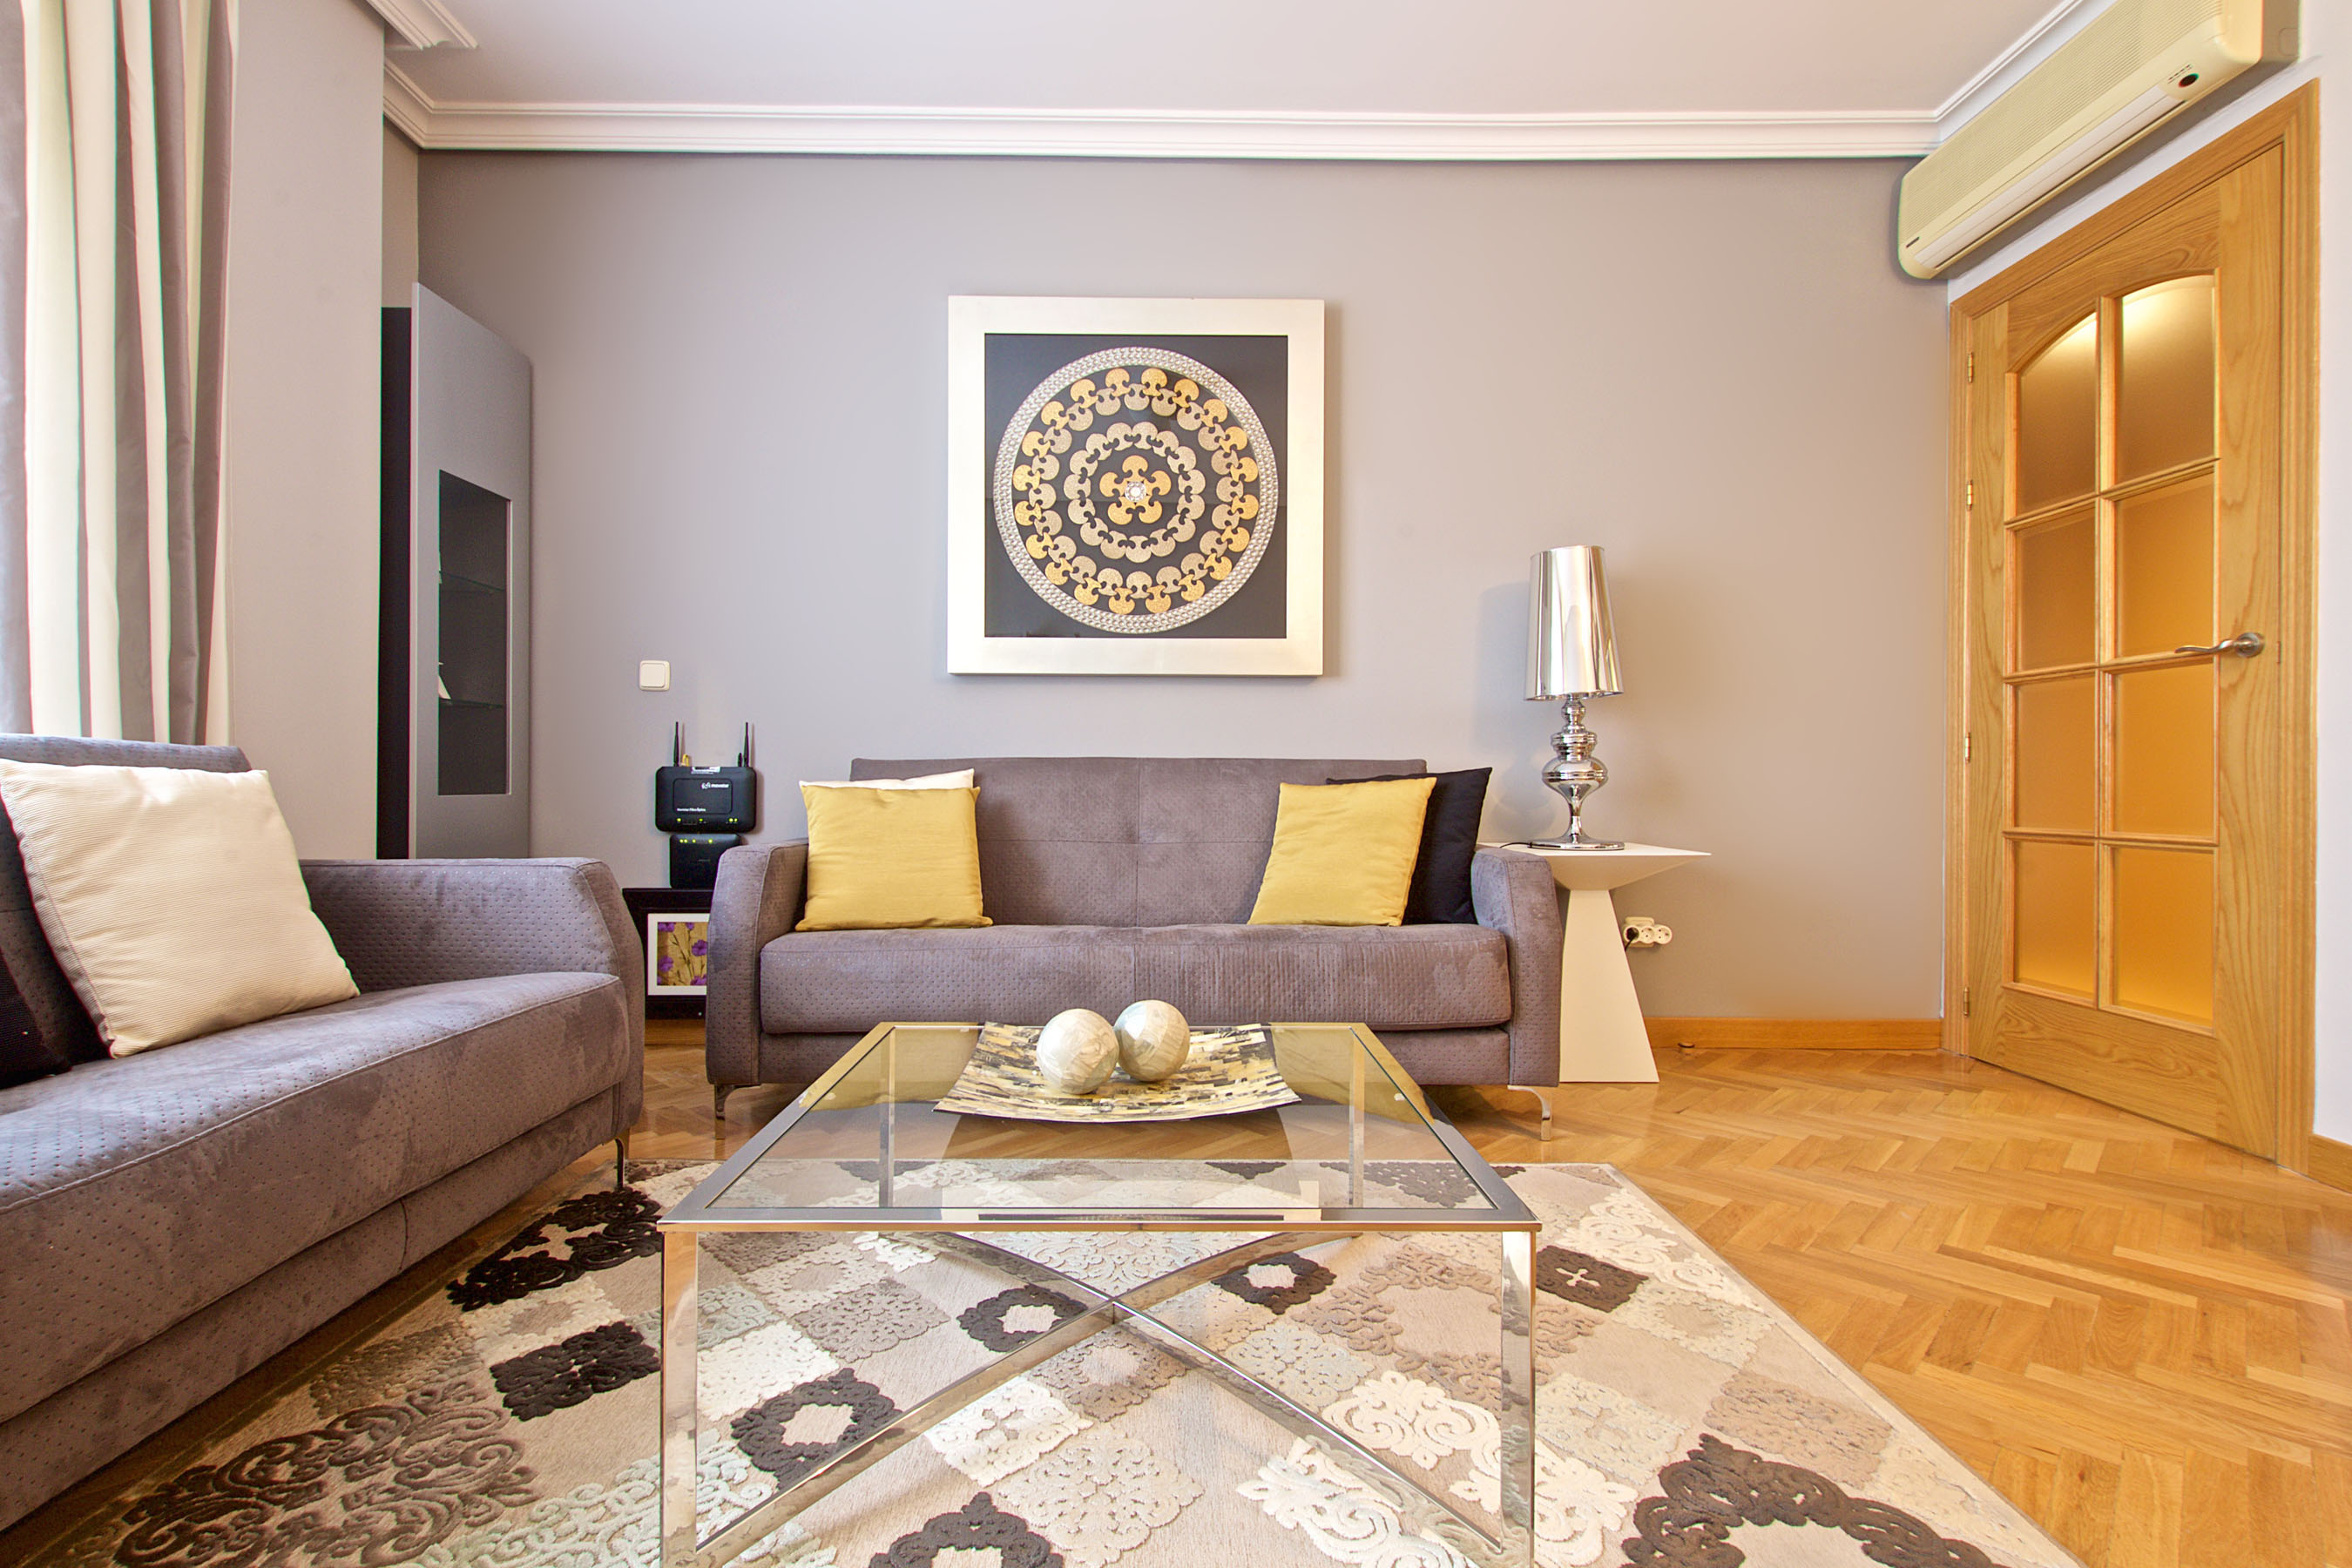 latina nature apartment madrid living dining room 6 Madrid's district, this month: La Latina